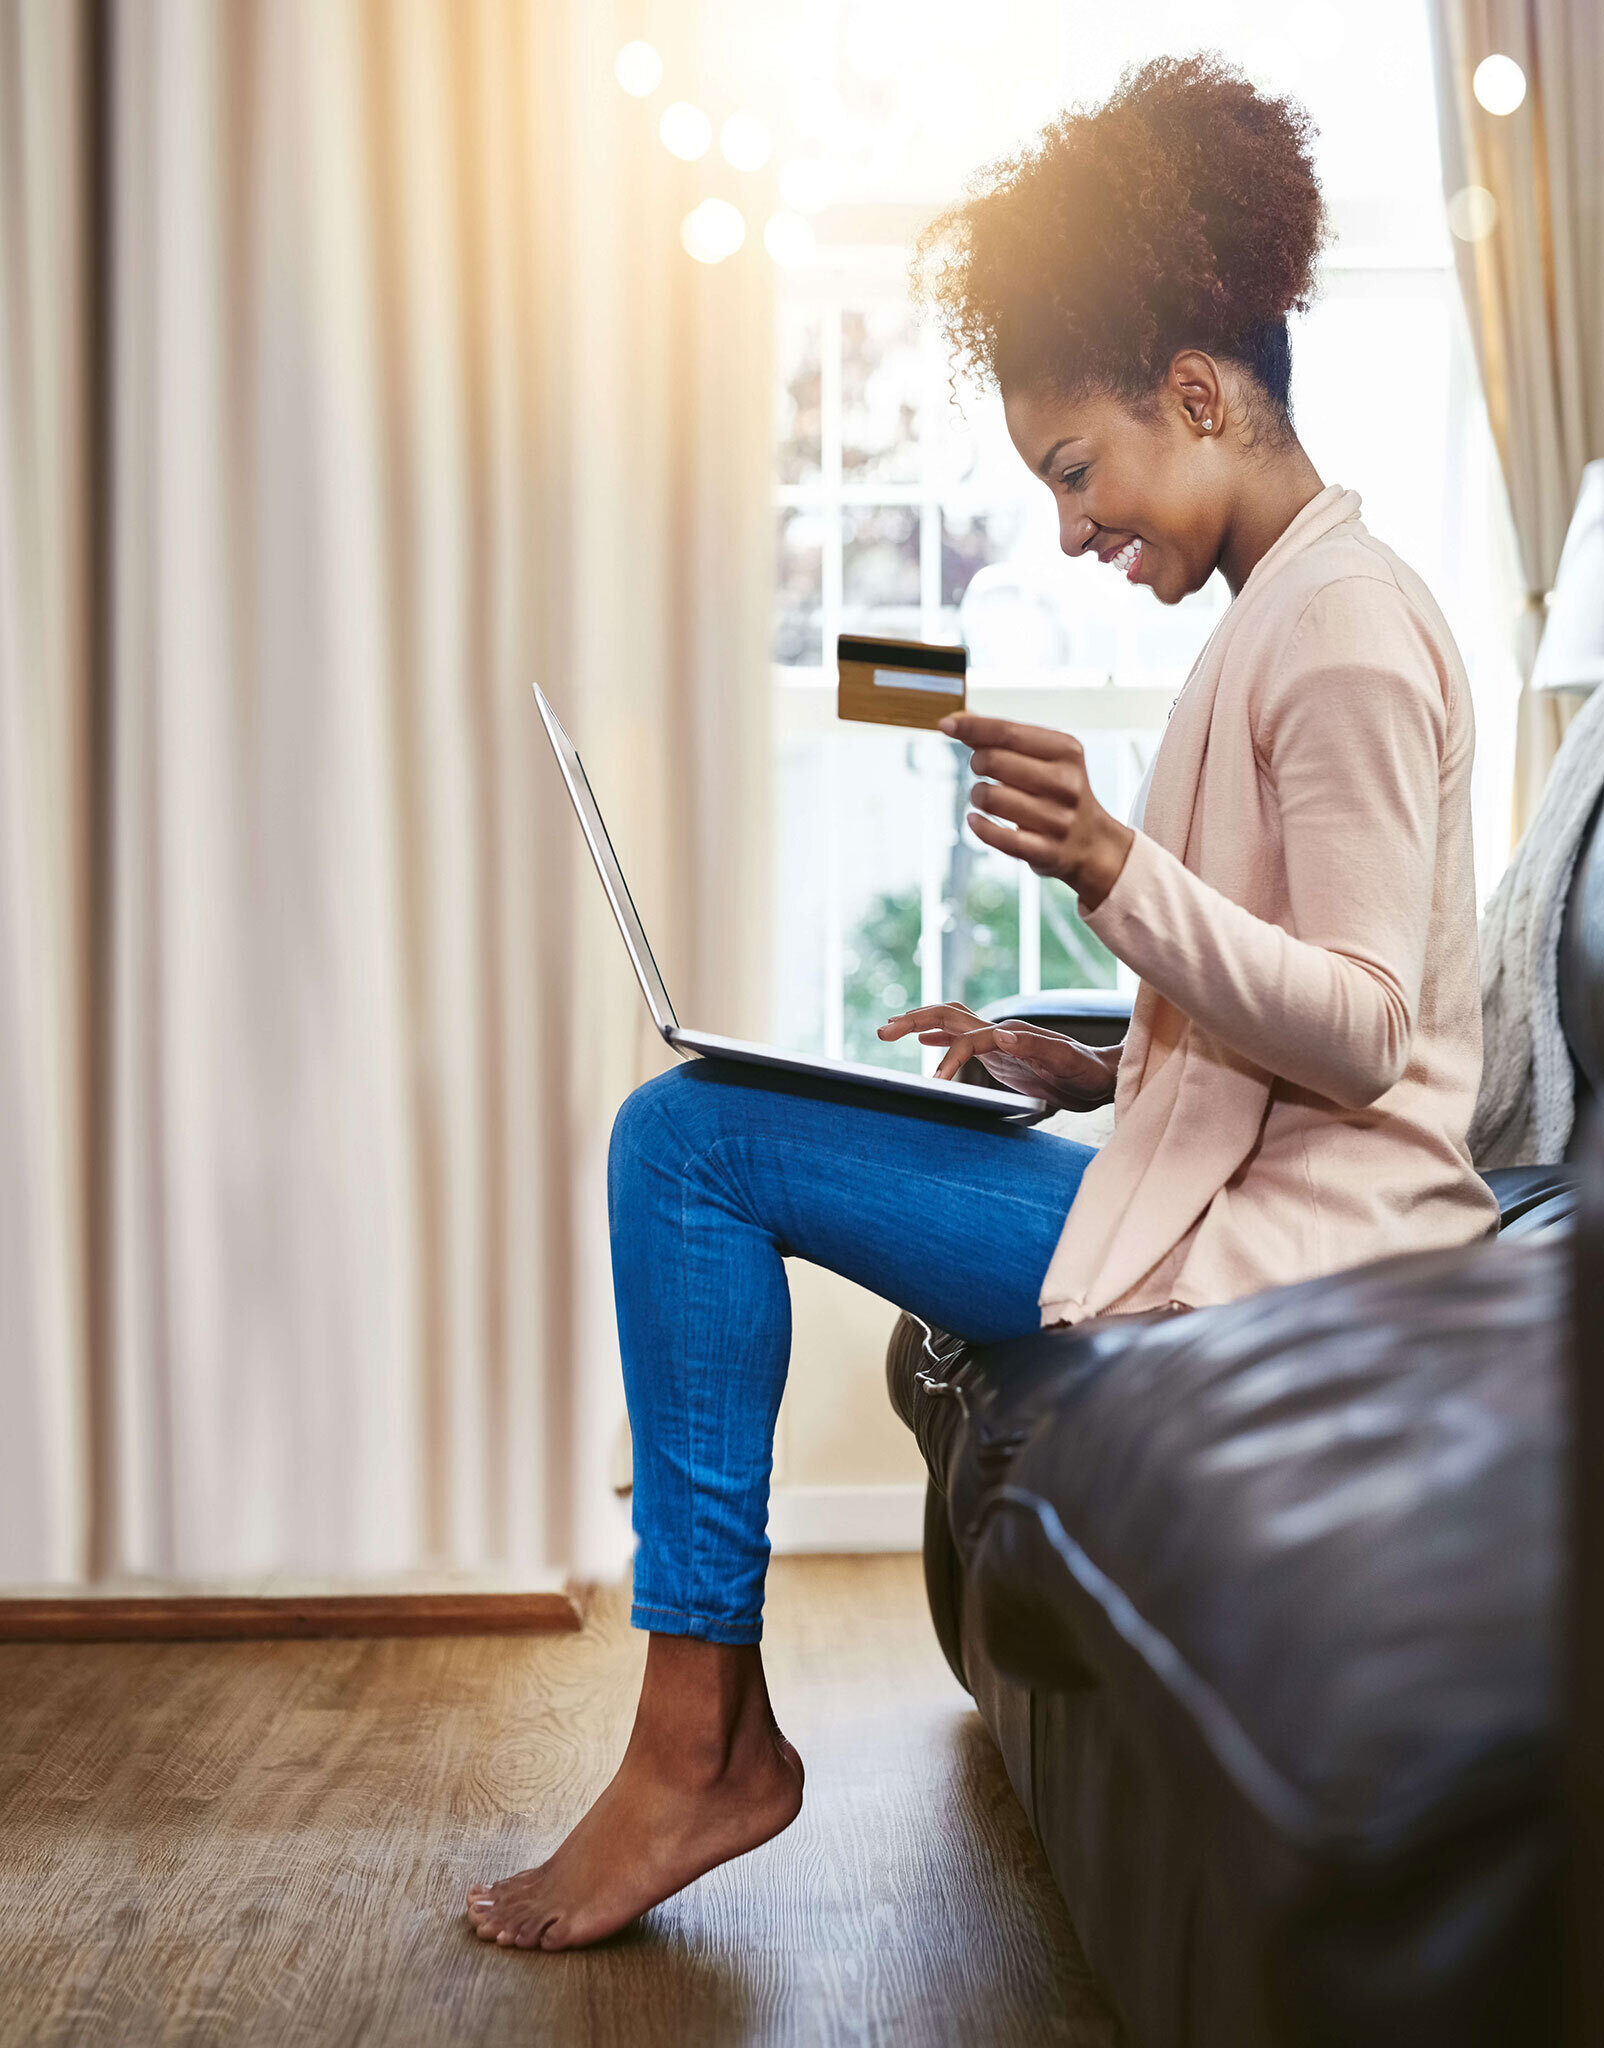 Woman smiling and sitting on couch with credit card